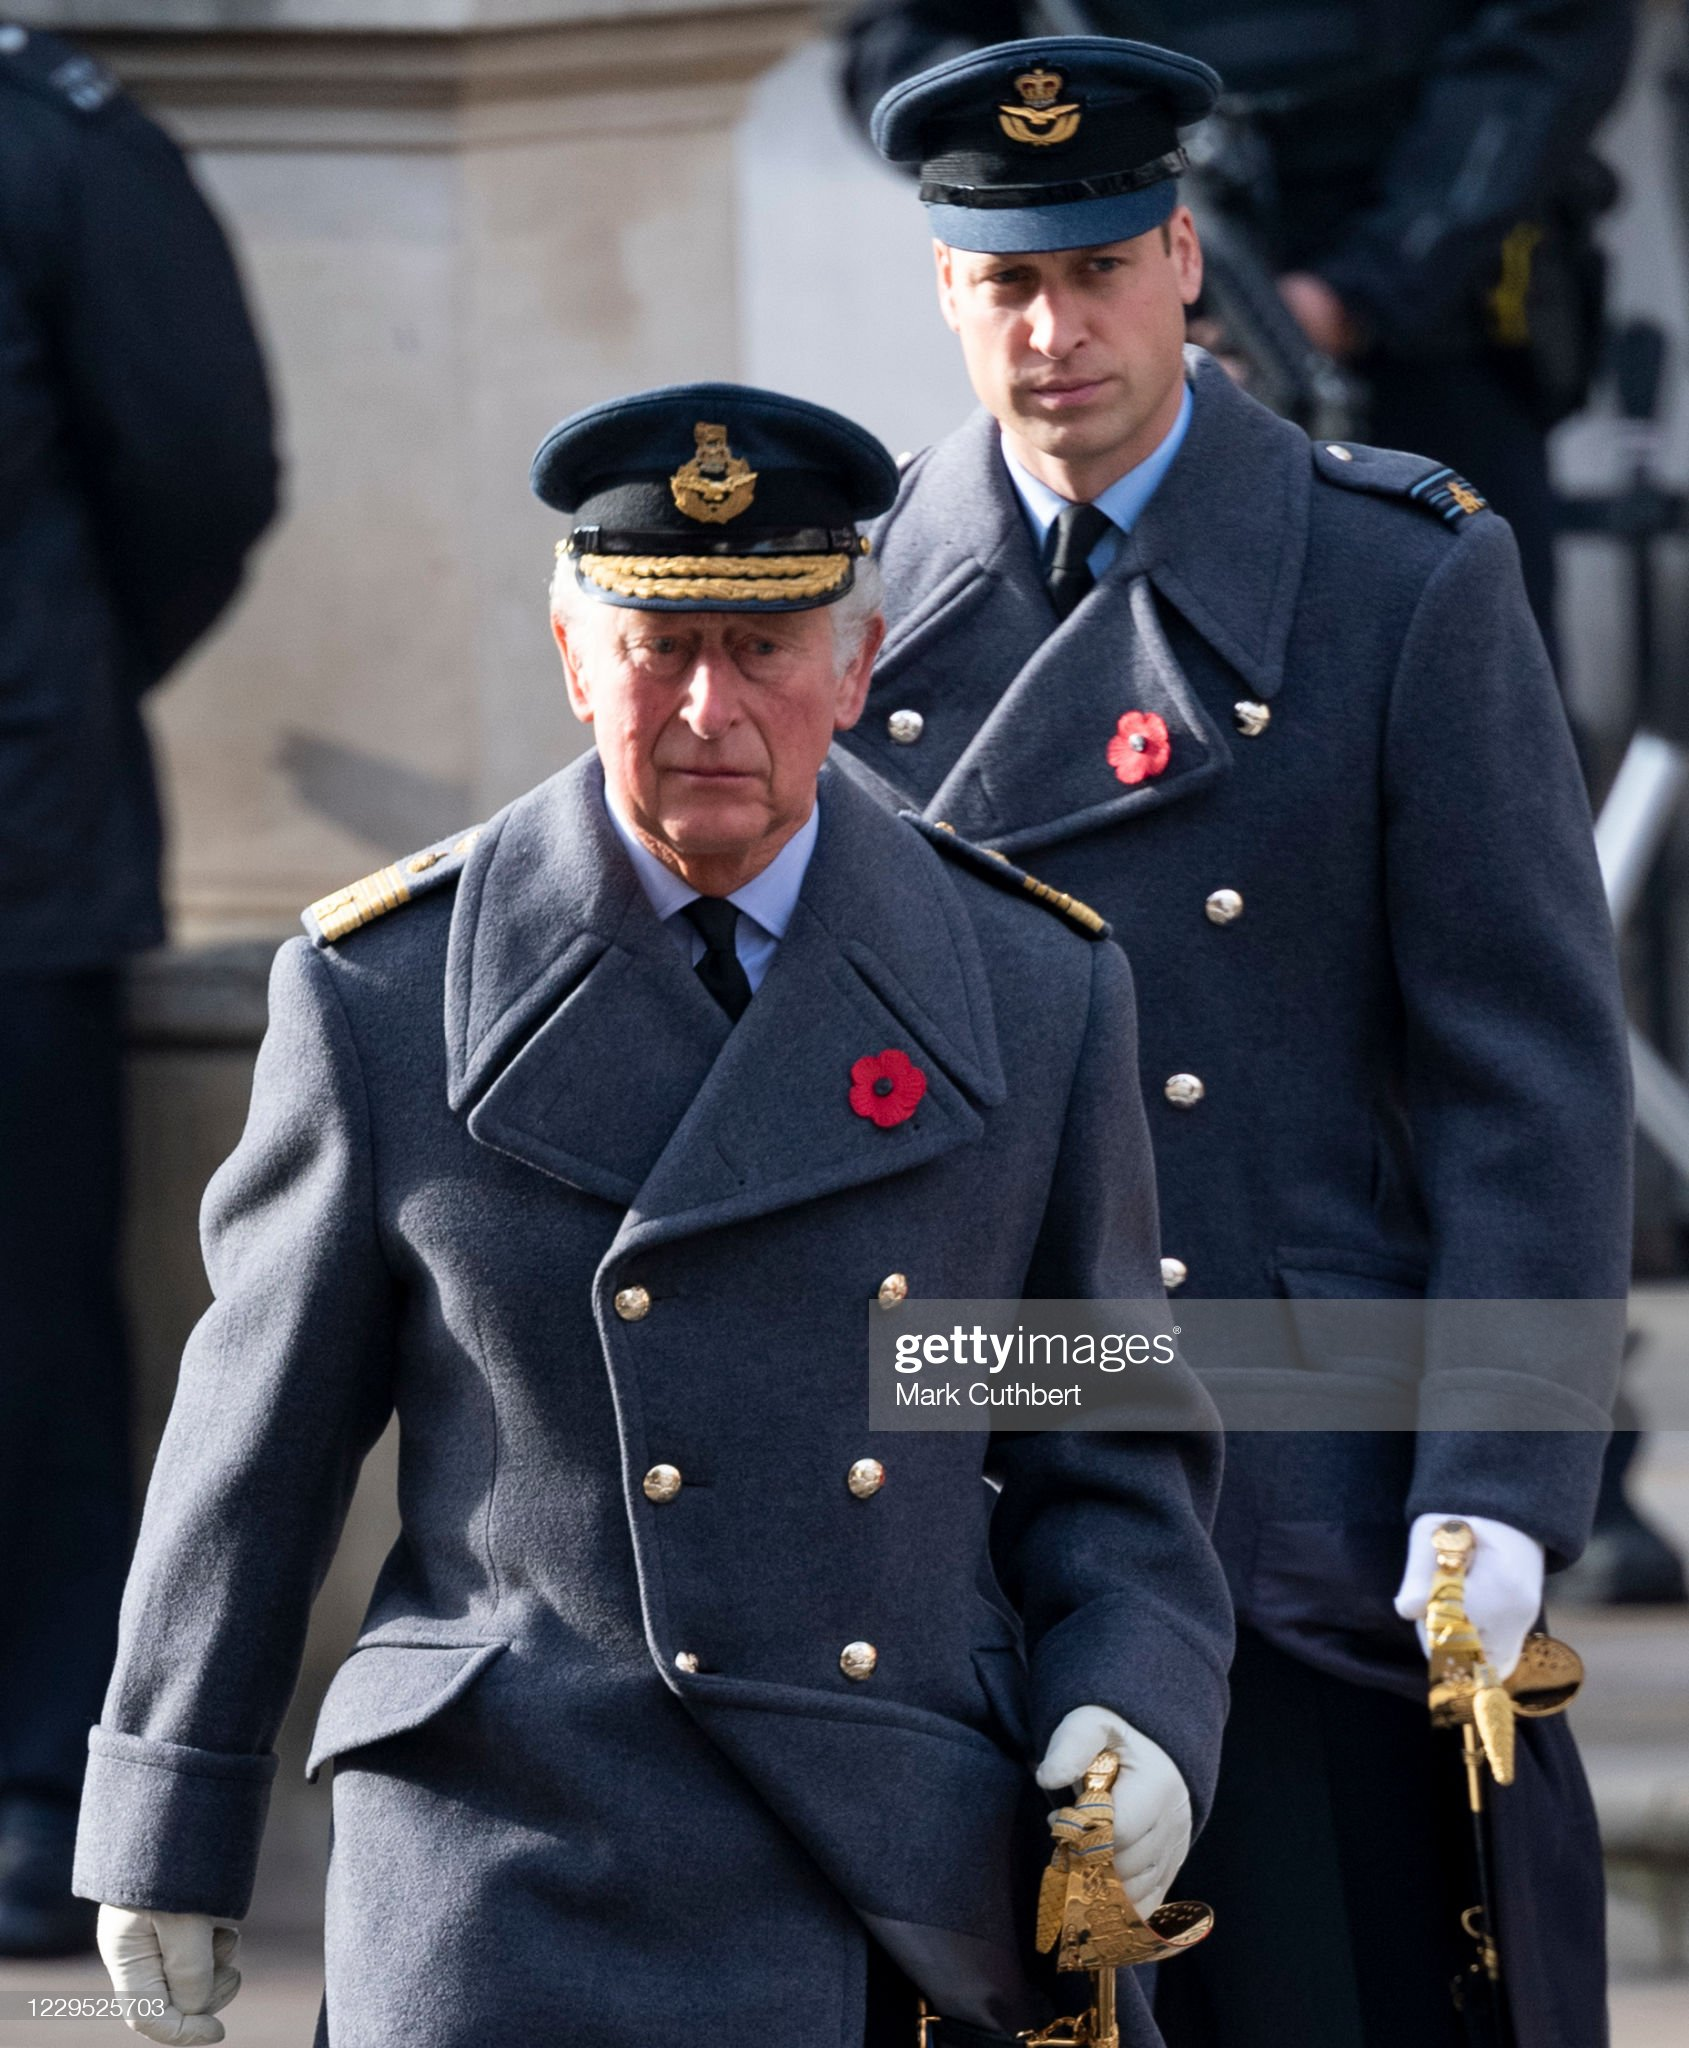 https://media.gettyimages.com/photos/prince-charles-prince-of-wales-and-prince-william-duke-of-cambridge-picture-id1229525703?s=2048x2048